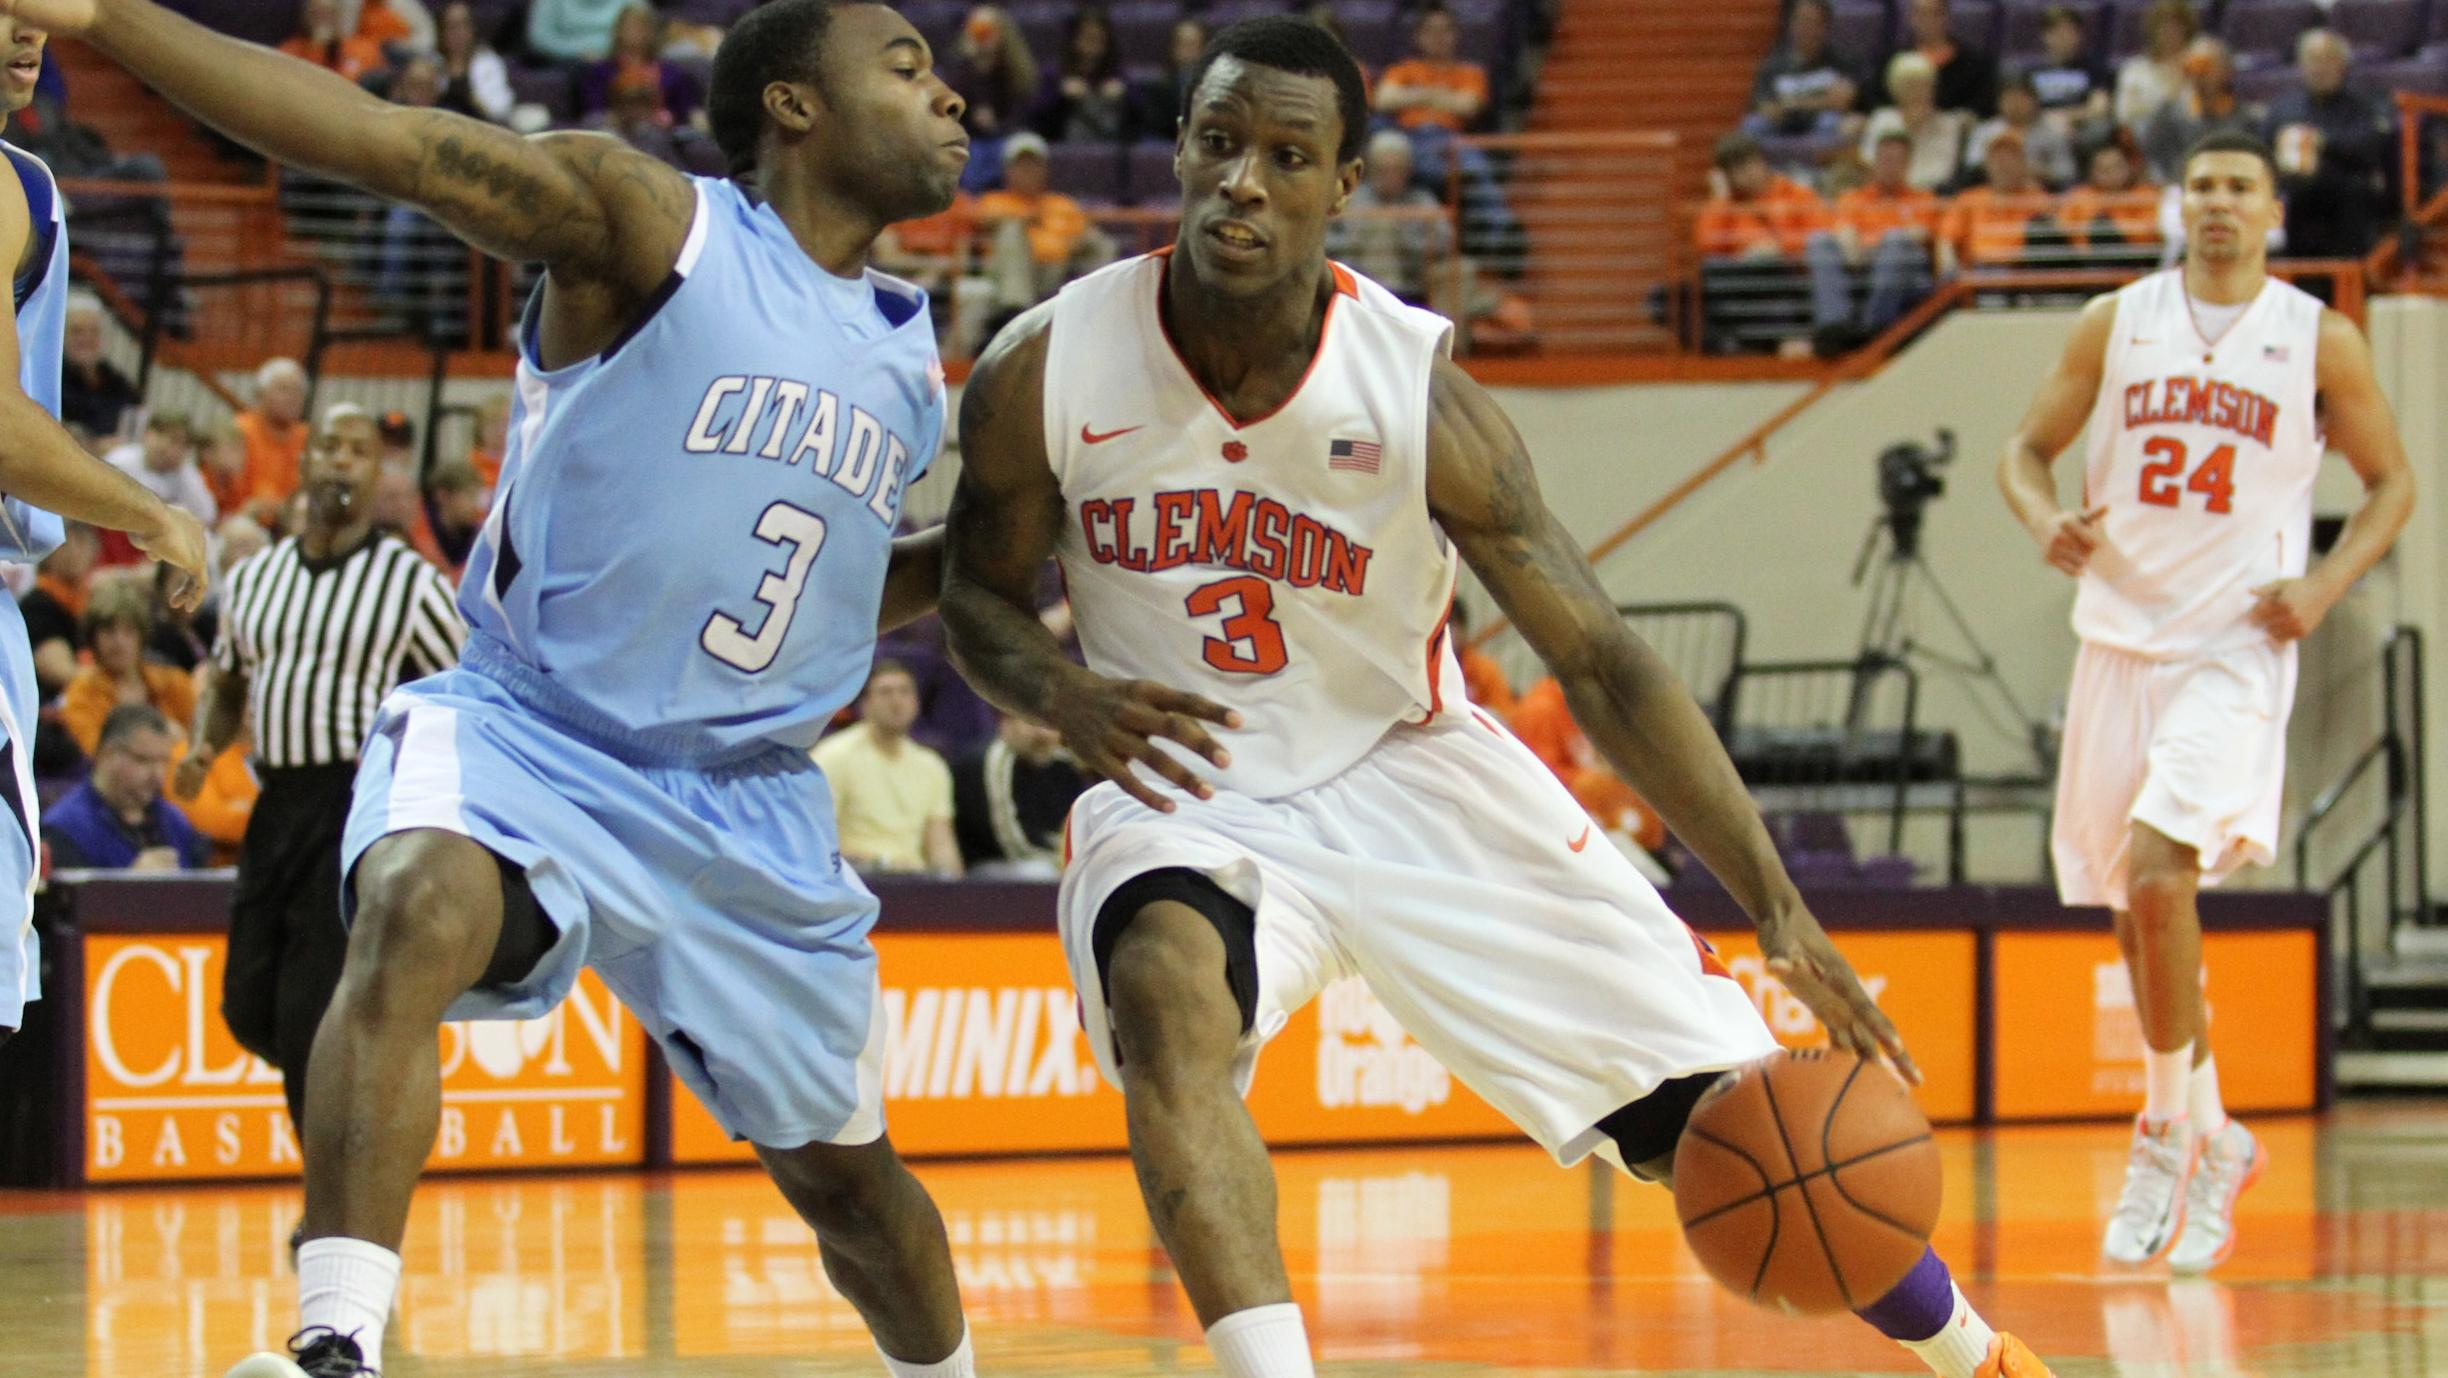 Clemson Offense Comes to Life in 92-51 Victory over The Citadel